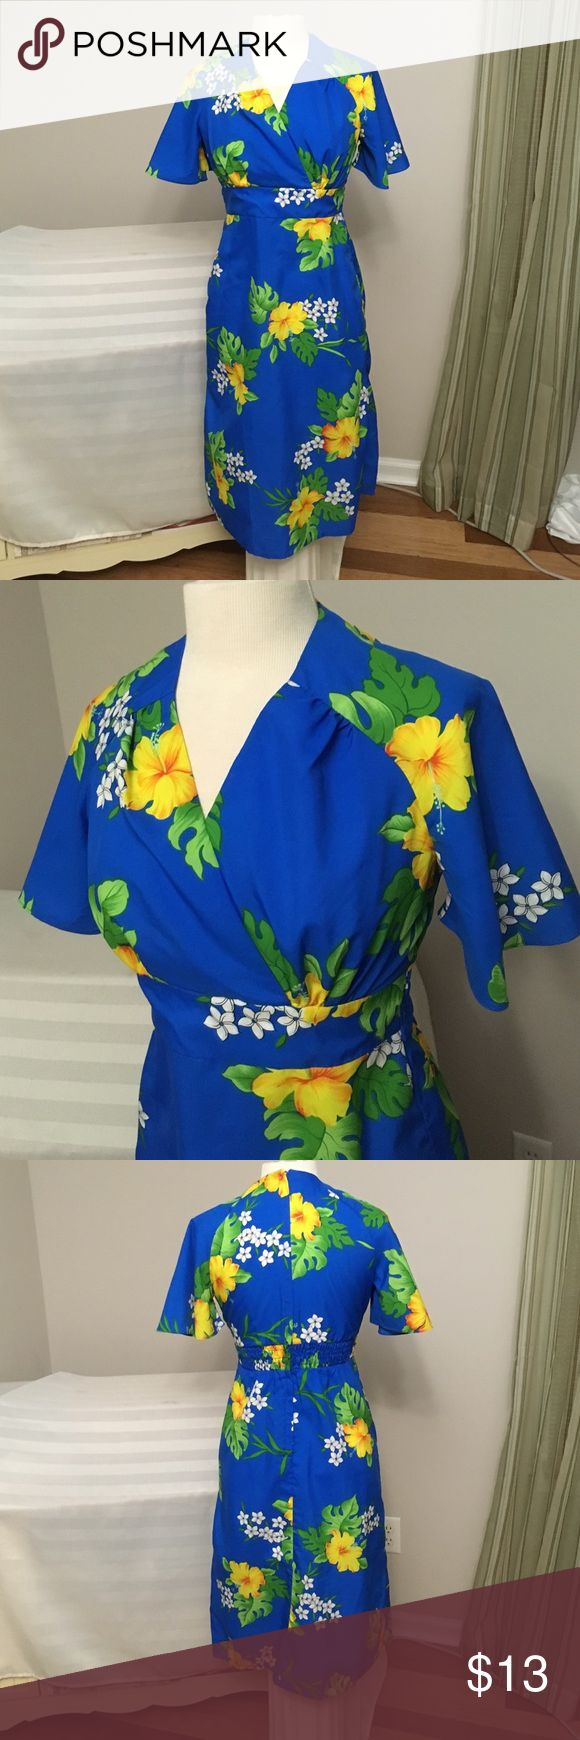 """Hawaiian 🌺 Dress Sz S Lightweight dress that was styled in Hawaii. Armpit to armpit is 16.5. Waist is 27"""". Hip 36"""". Zips up the back. There is elastic on the back waist. Shoulder to hem is 41"""". Royal Hawaiin Dresses Midi"""